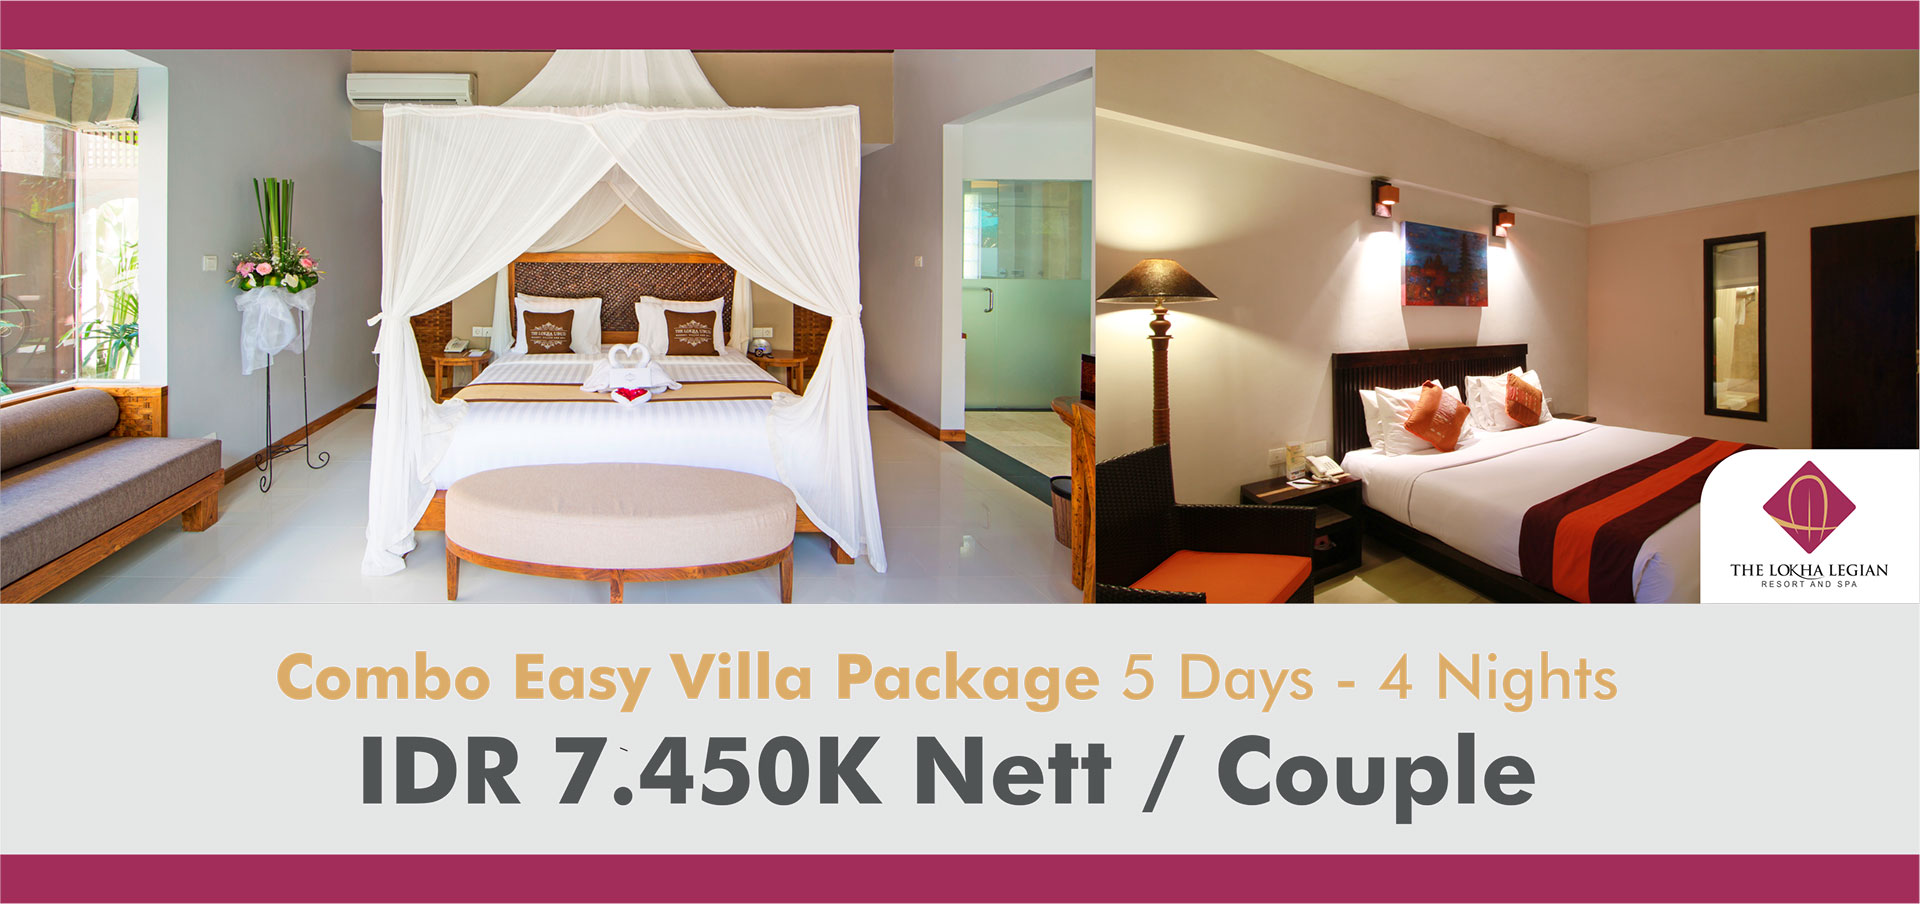 Combo-easy-Villas-Package